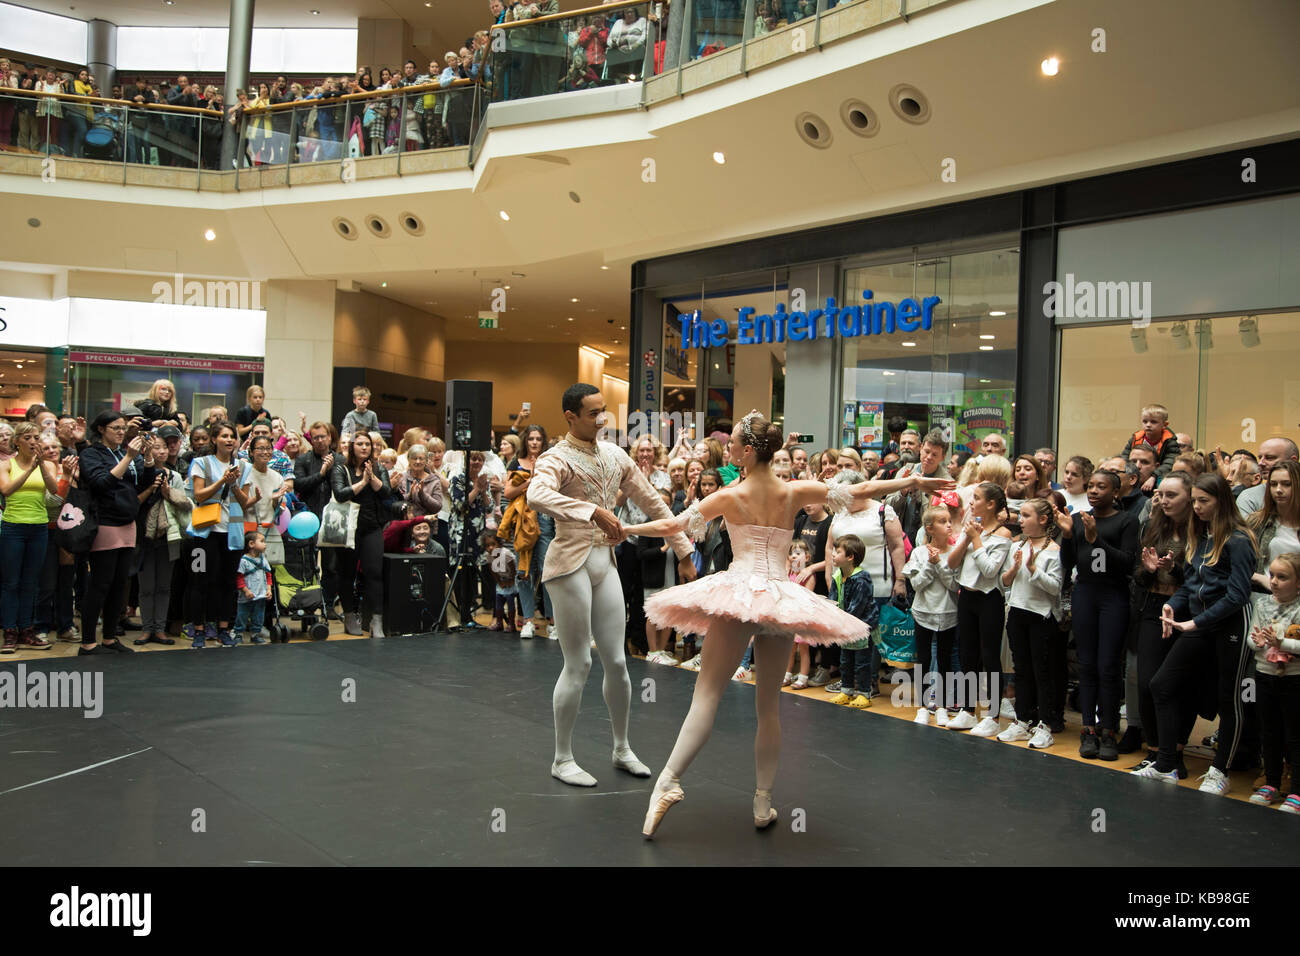 Members of the Birmingham Royal Ballet perform a section from The Nutcracker in the Bullring to a packed audience - Stock Image